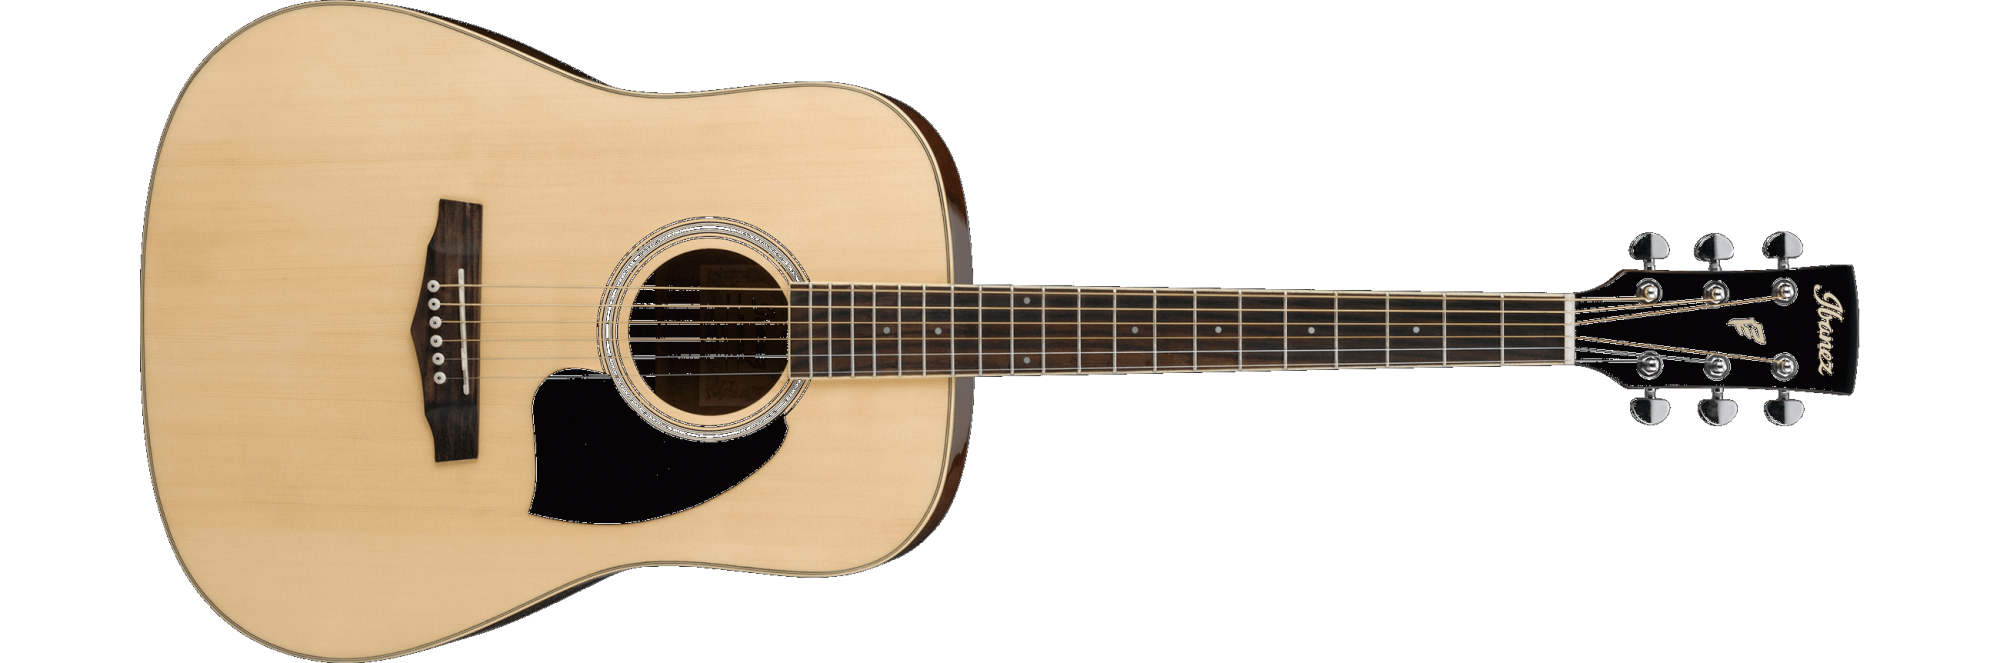 Ibanez PF15NT Series Acoustic Natural